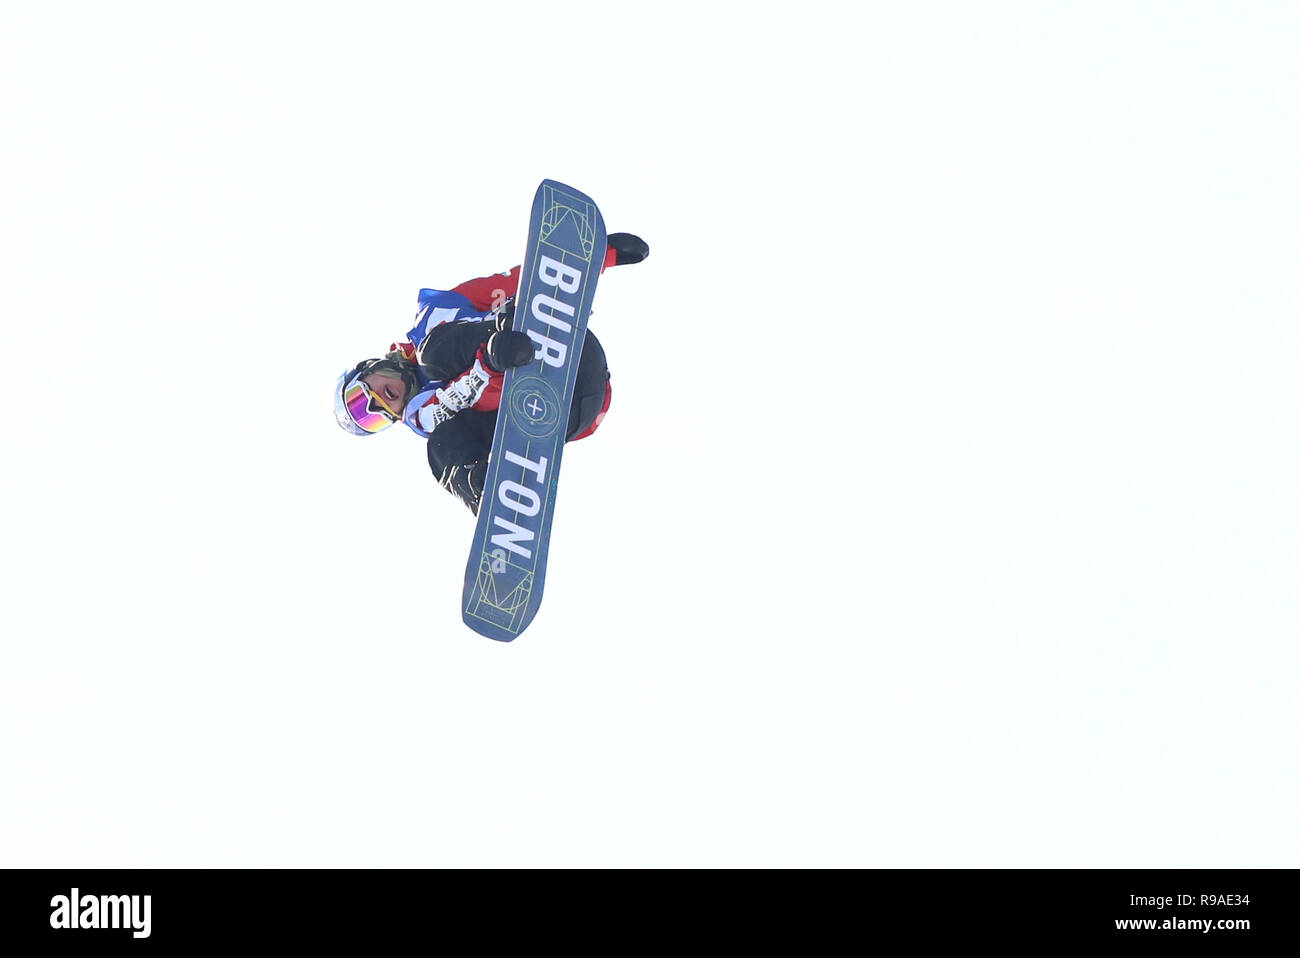 Chongli, China's Hebei Province. 21st Dec, 2018. Otsuka Takeru of Japan competes during the men's slopestyle final at FIS Snowboard World Cup in Chongli of Zhangjiakou City, north China's Hebei Province, Dec. 21, 2018. Credit: Cao Can/Xinhua/Alamy Live News - Stock Image